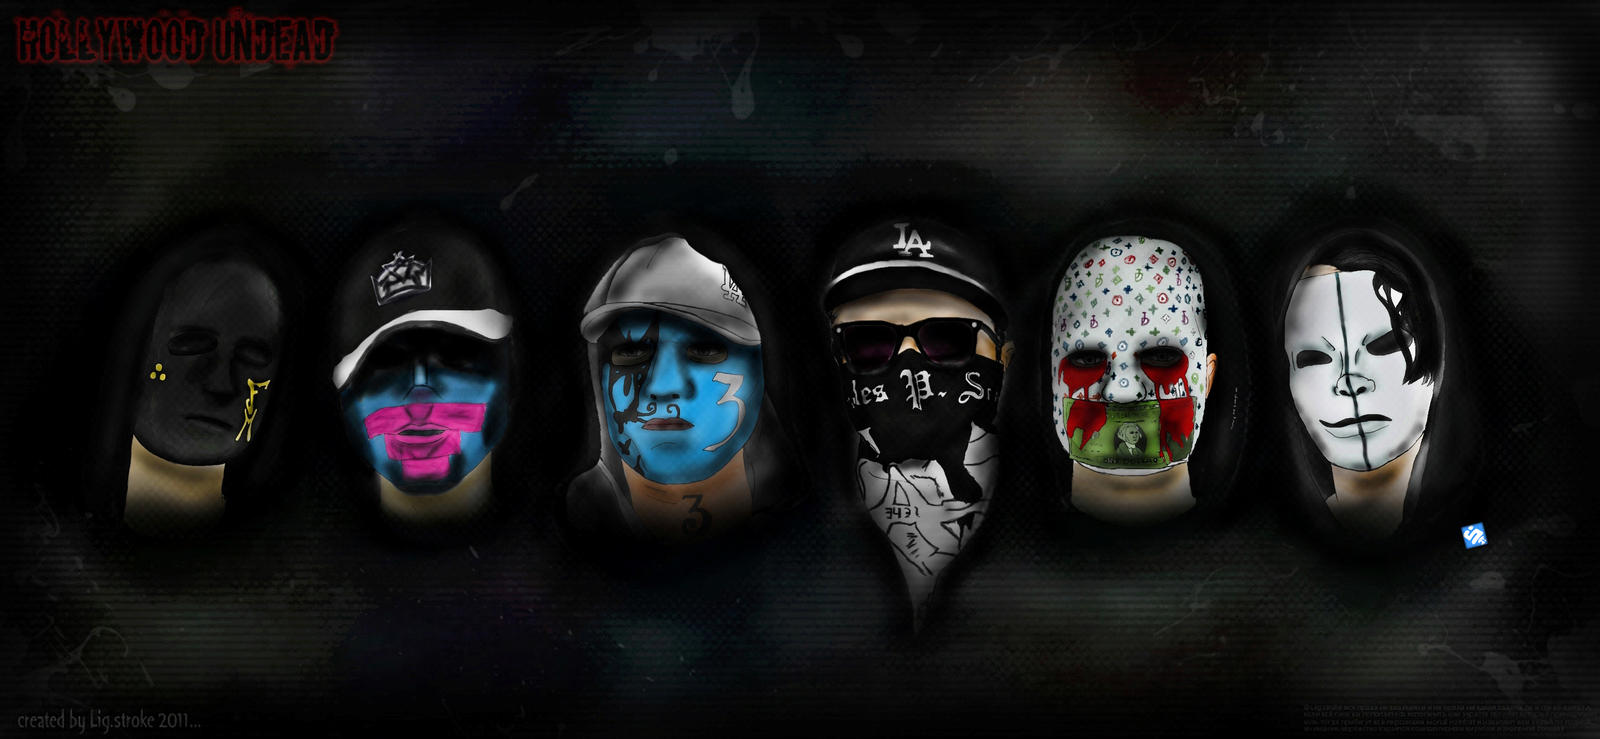 hollywood undead wallpaper 1920x1080